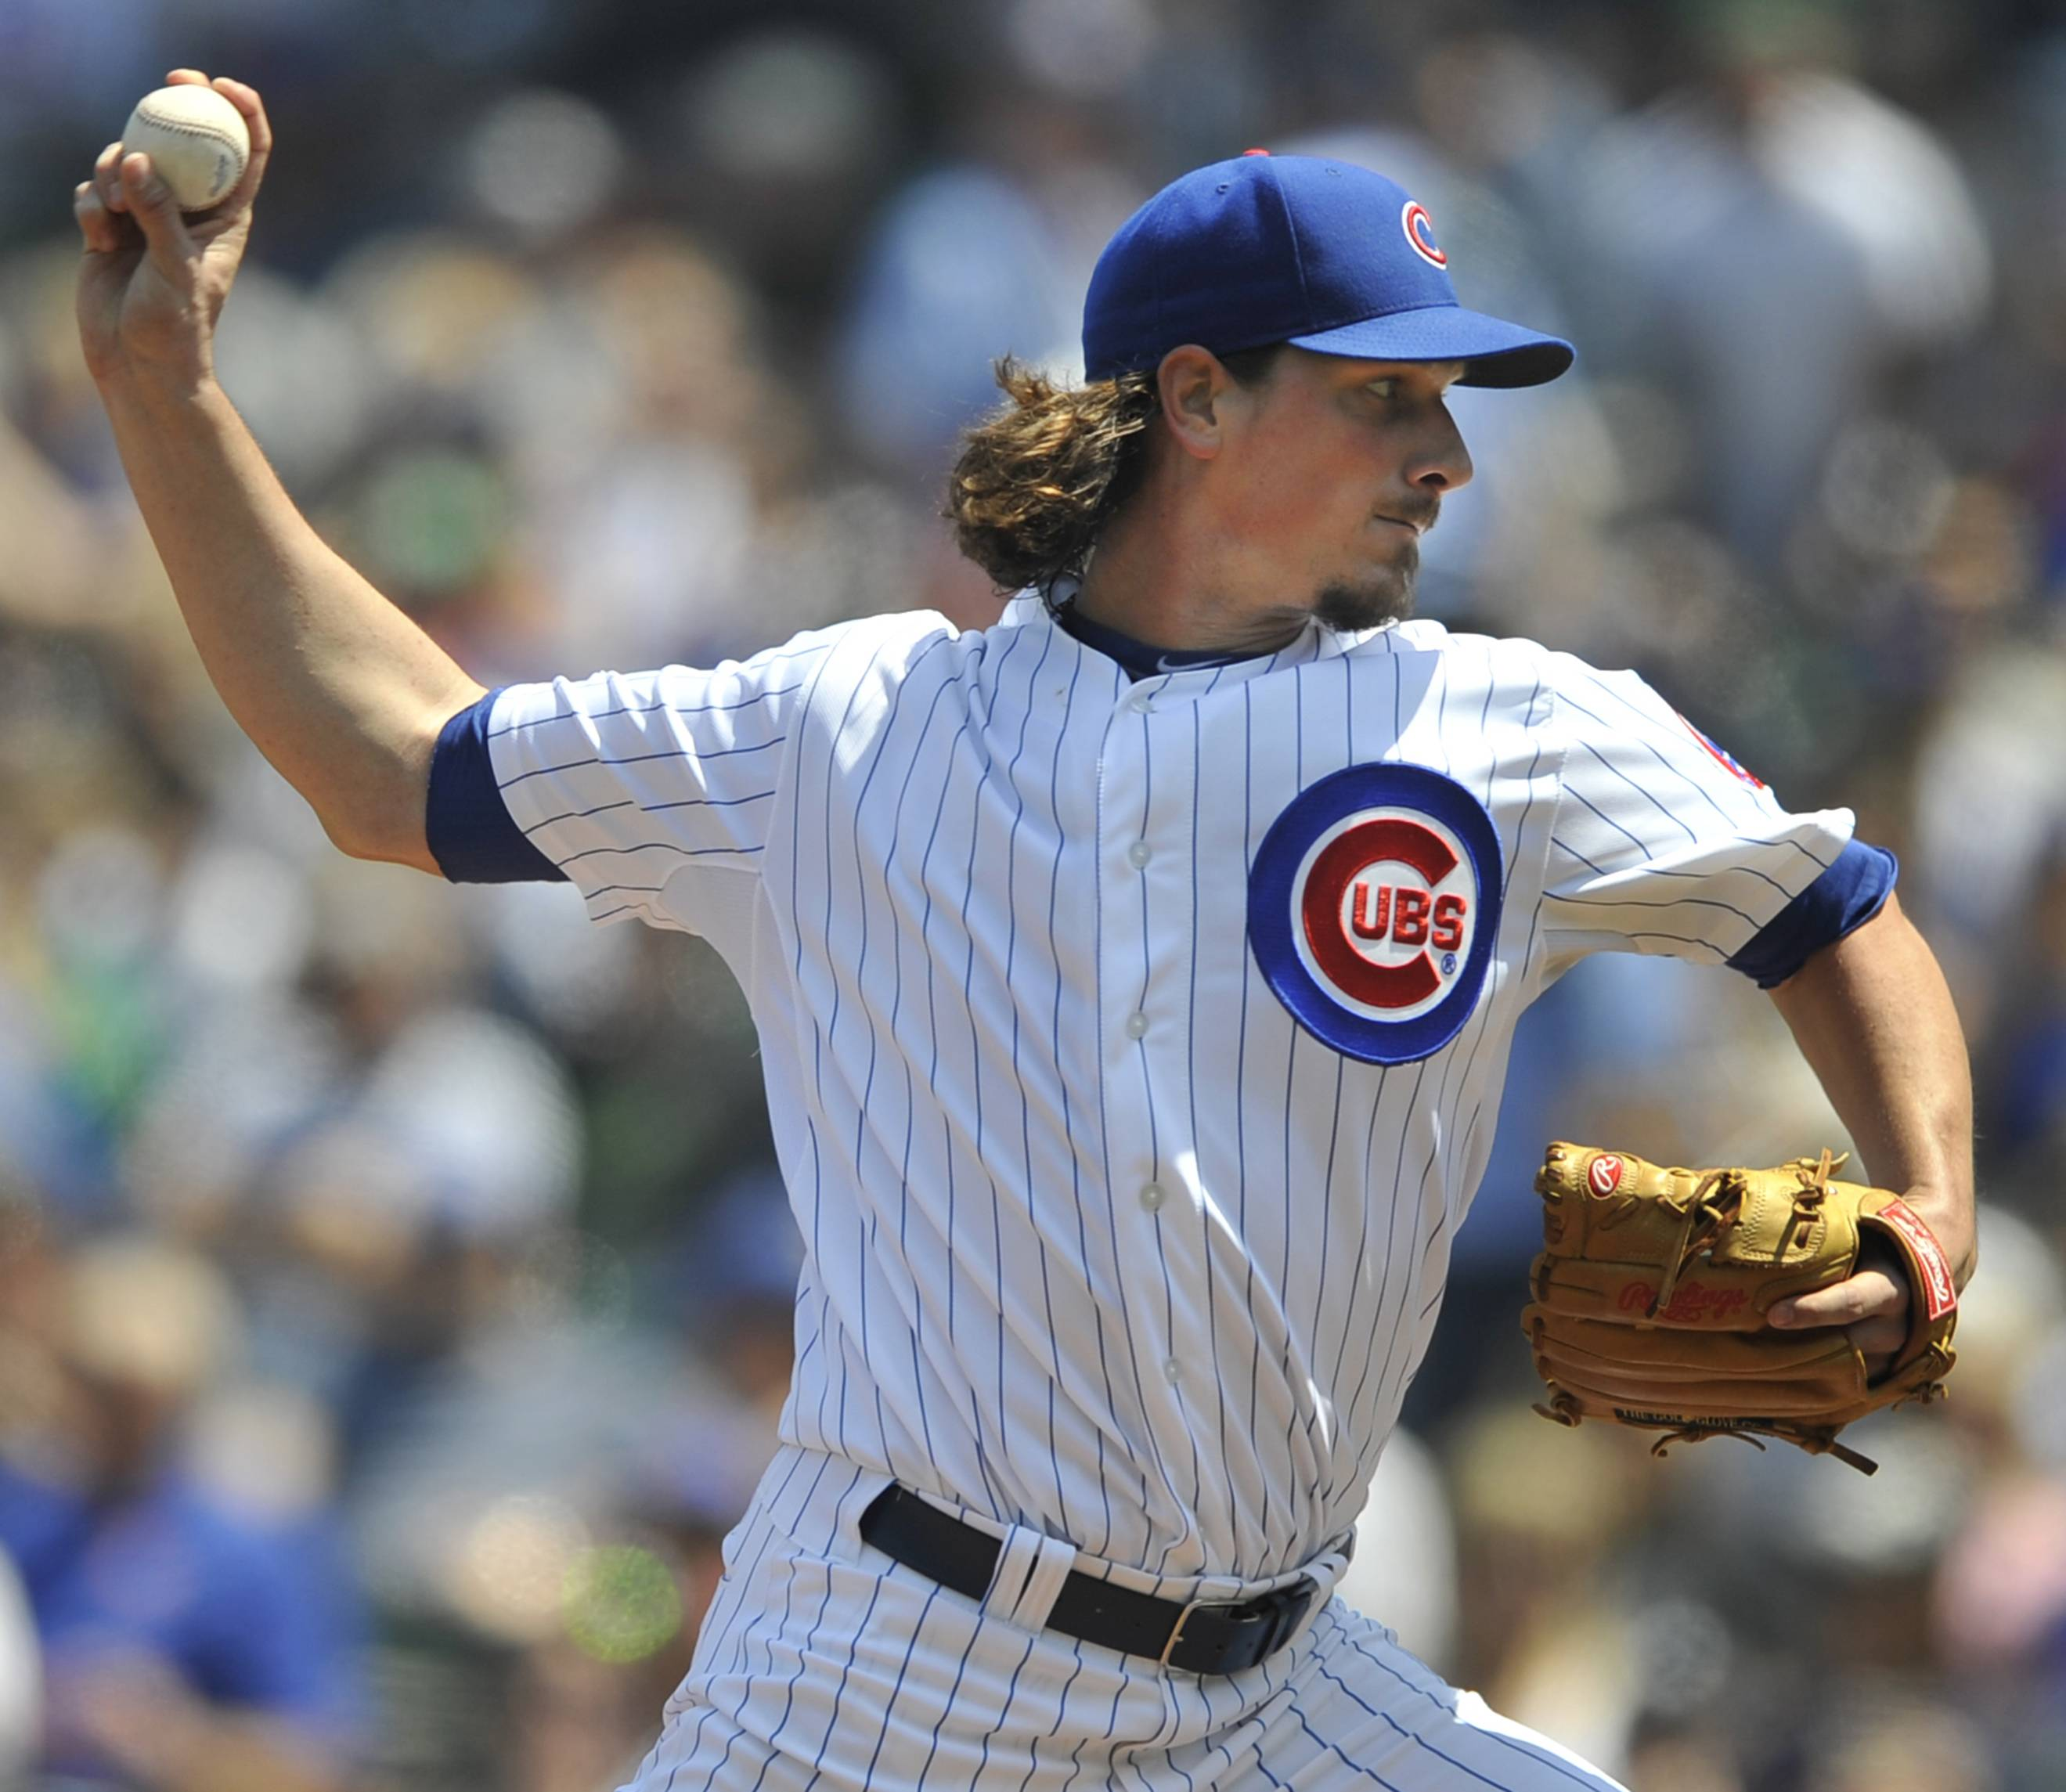 Cubs starter Jeff Samardzija has yet to win a game this season, but he leads the National League in ERA.